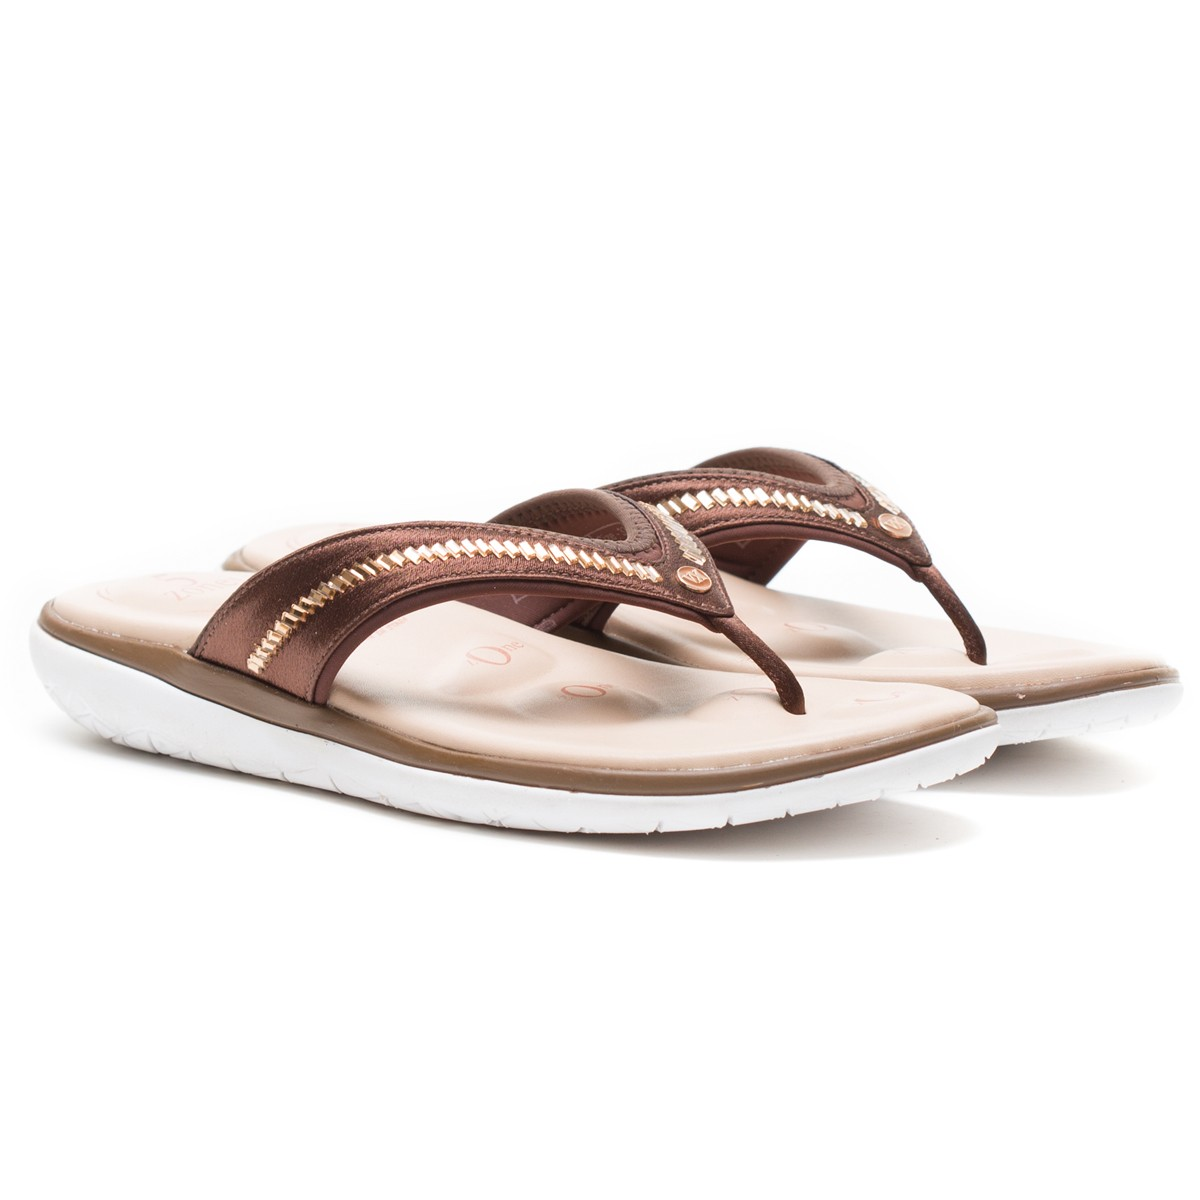 Buy VON WELLX MOLLY COMFORT BROWN SLIPPER In Delhi